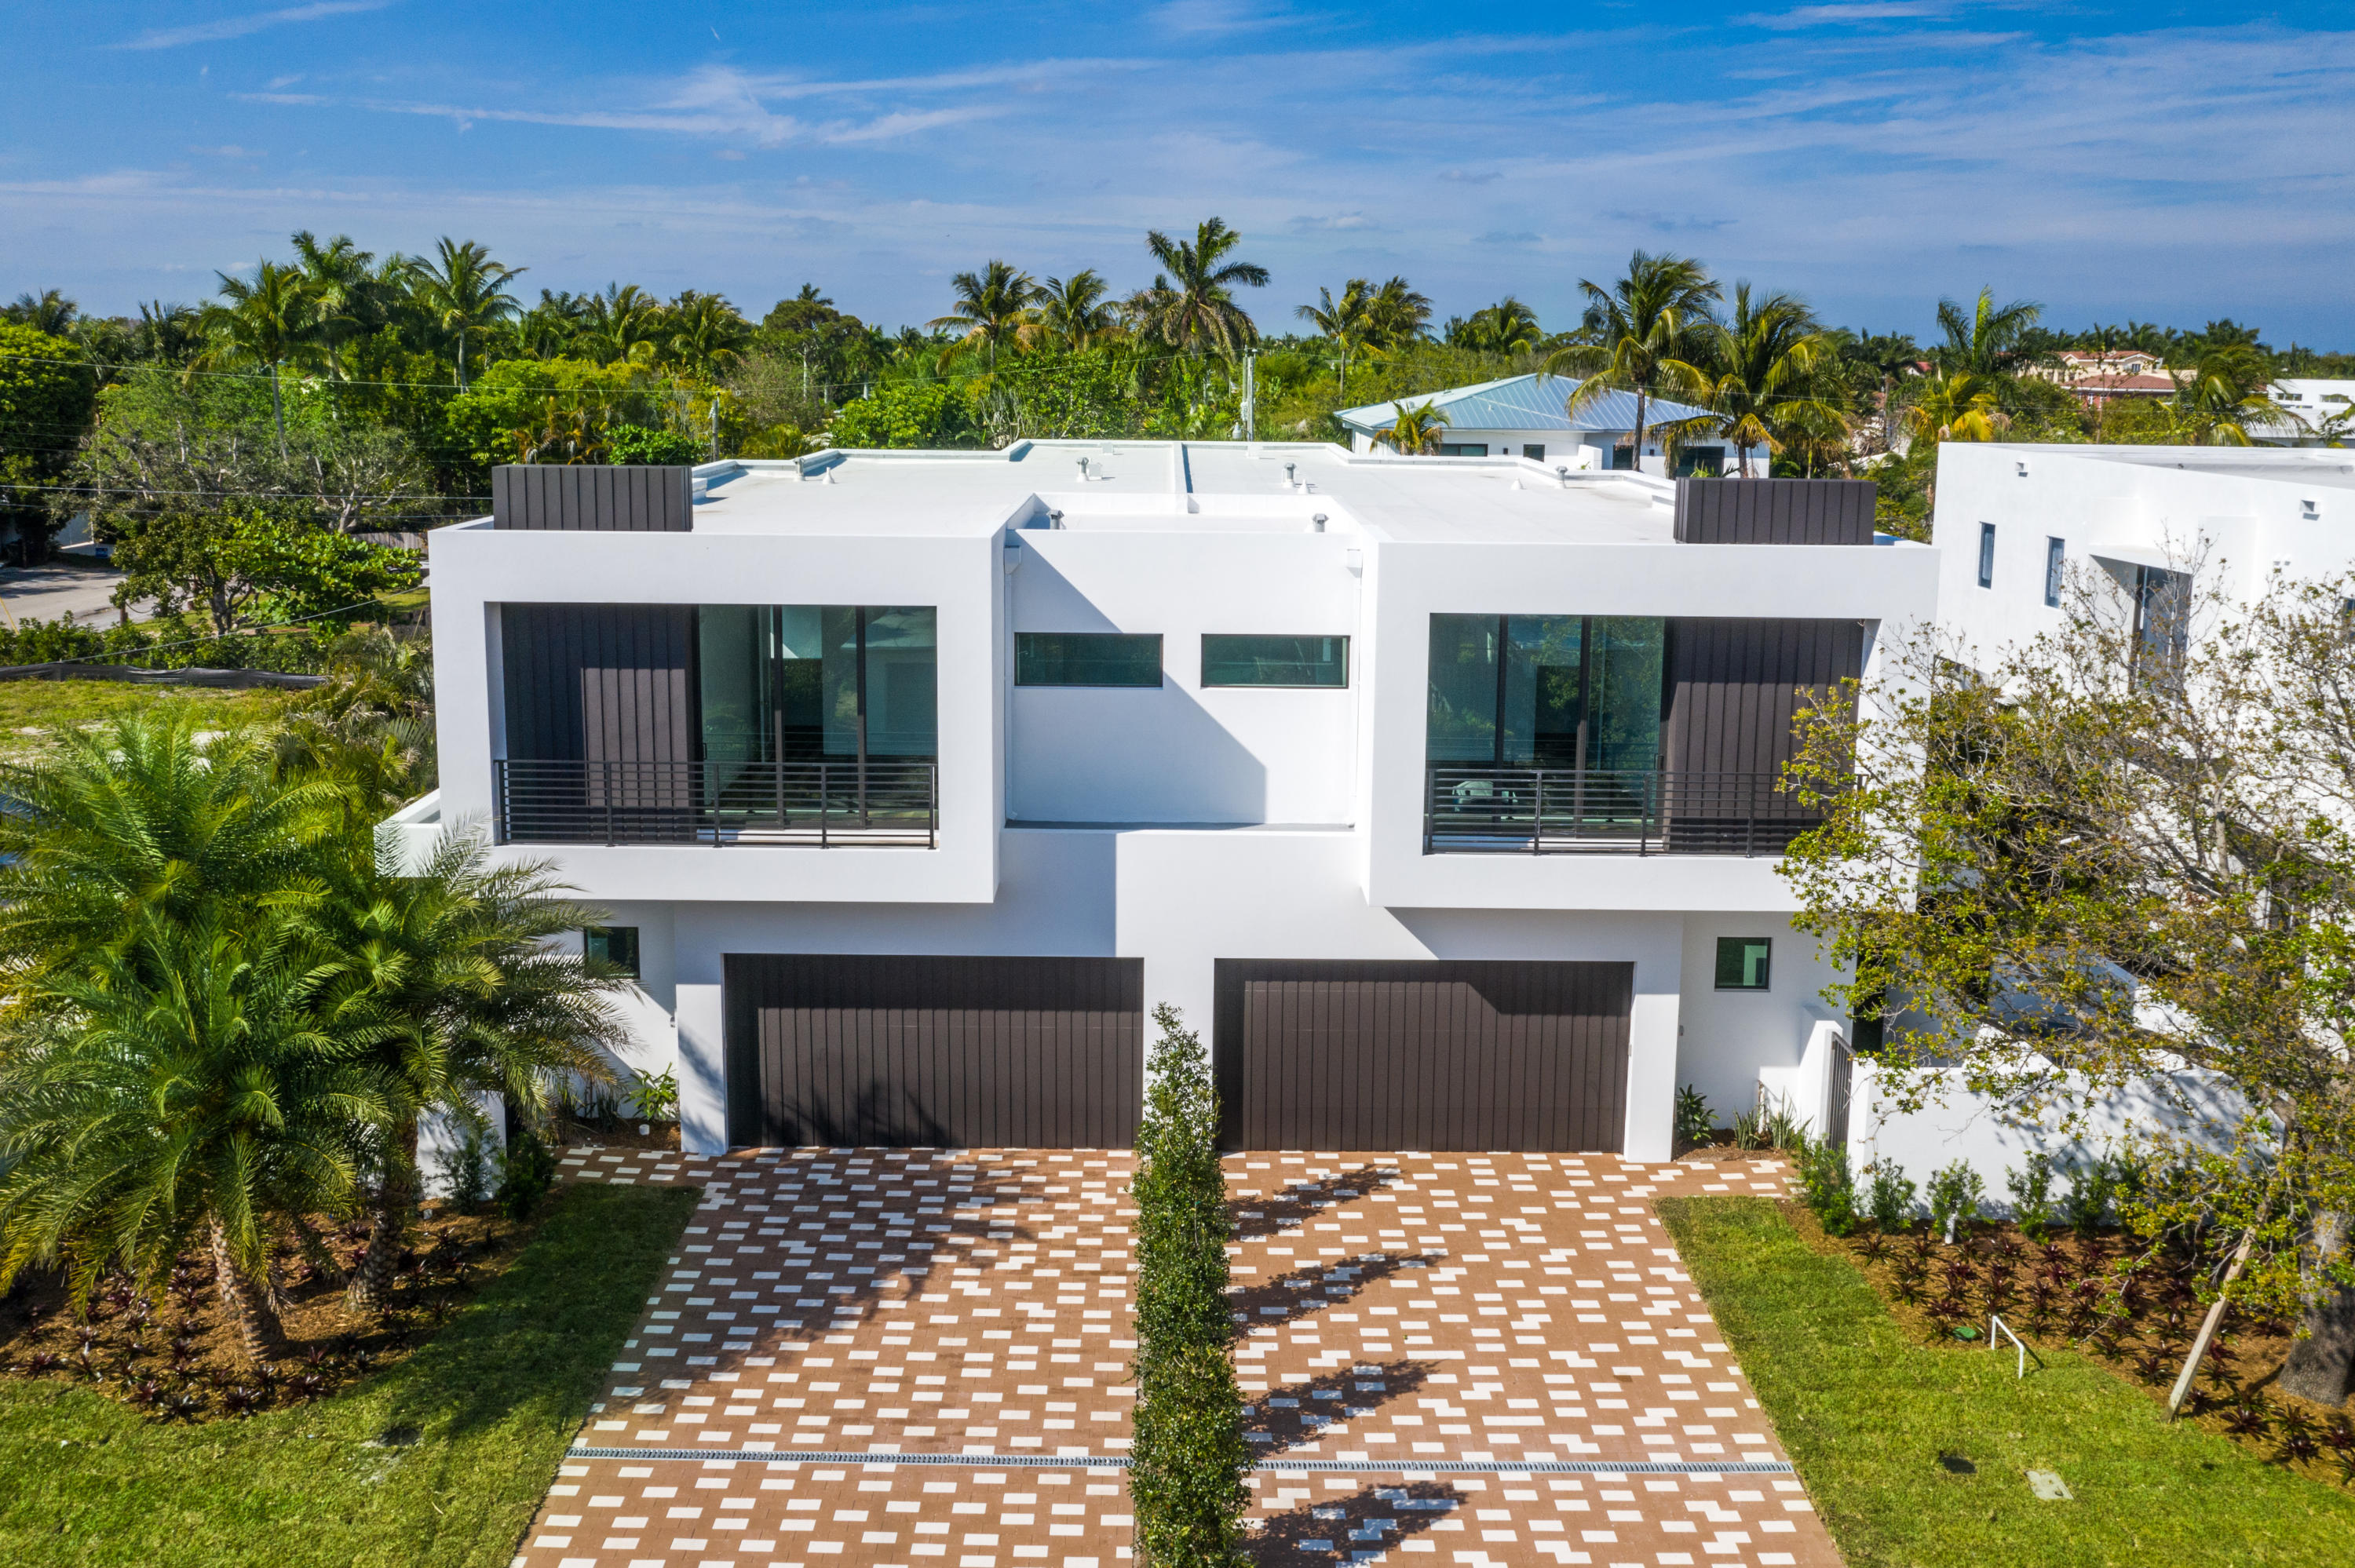 Home for sale in Witherspoon Delray Beach Florida